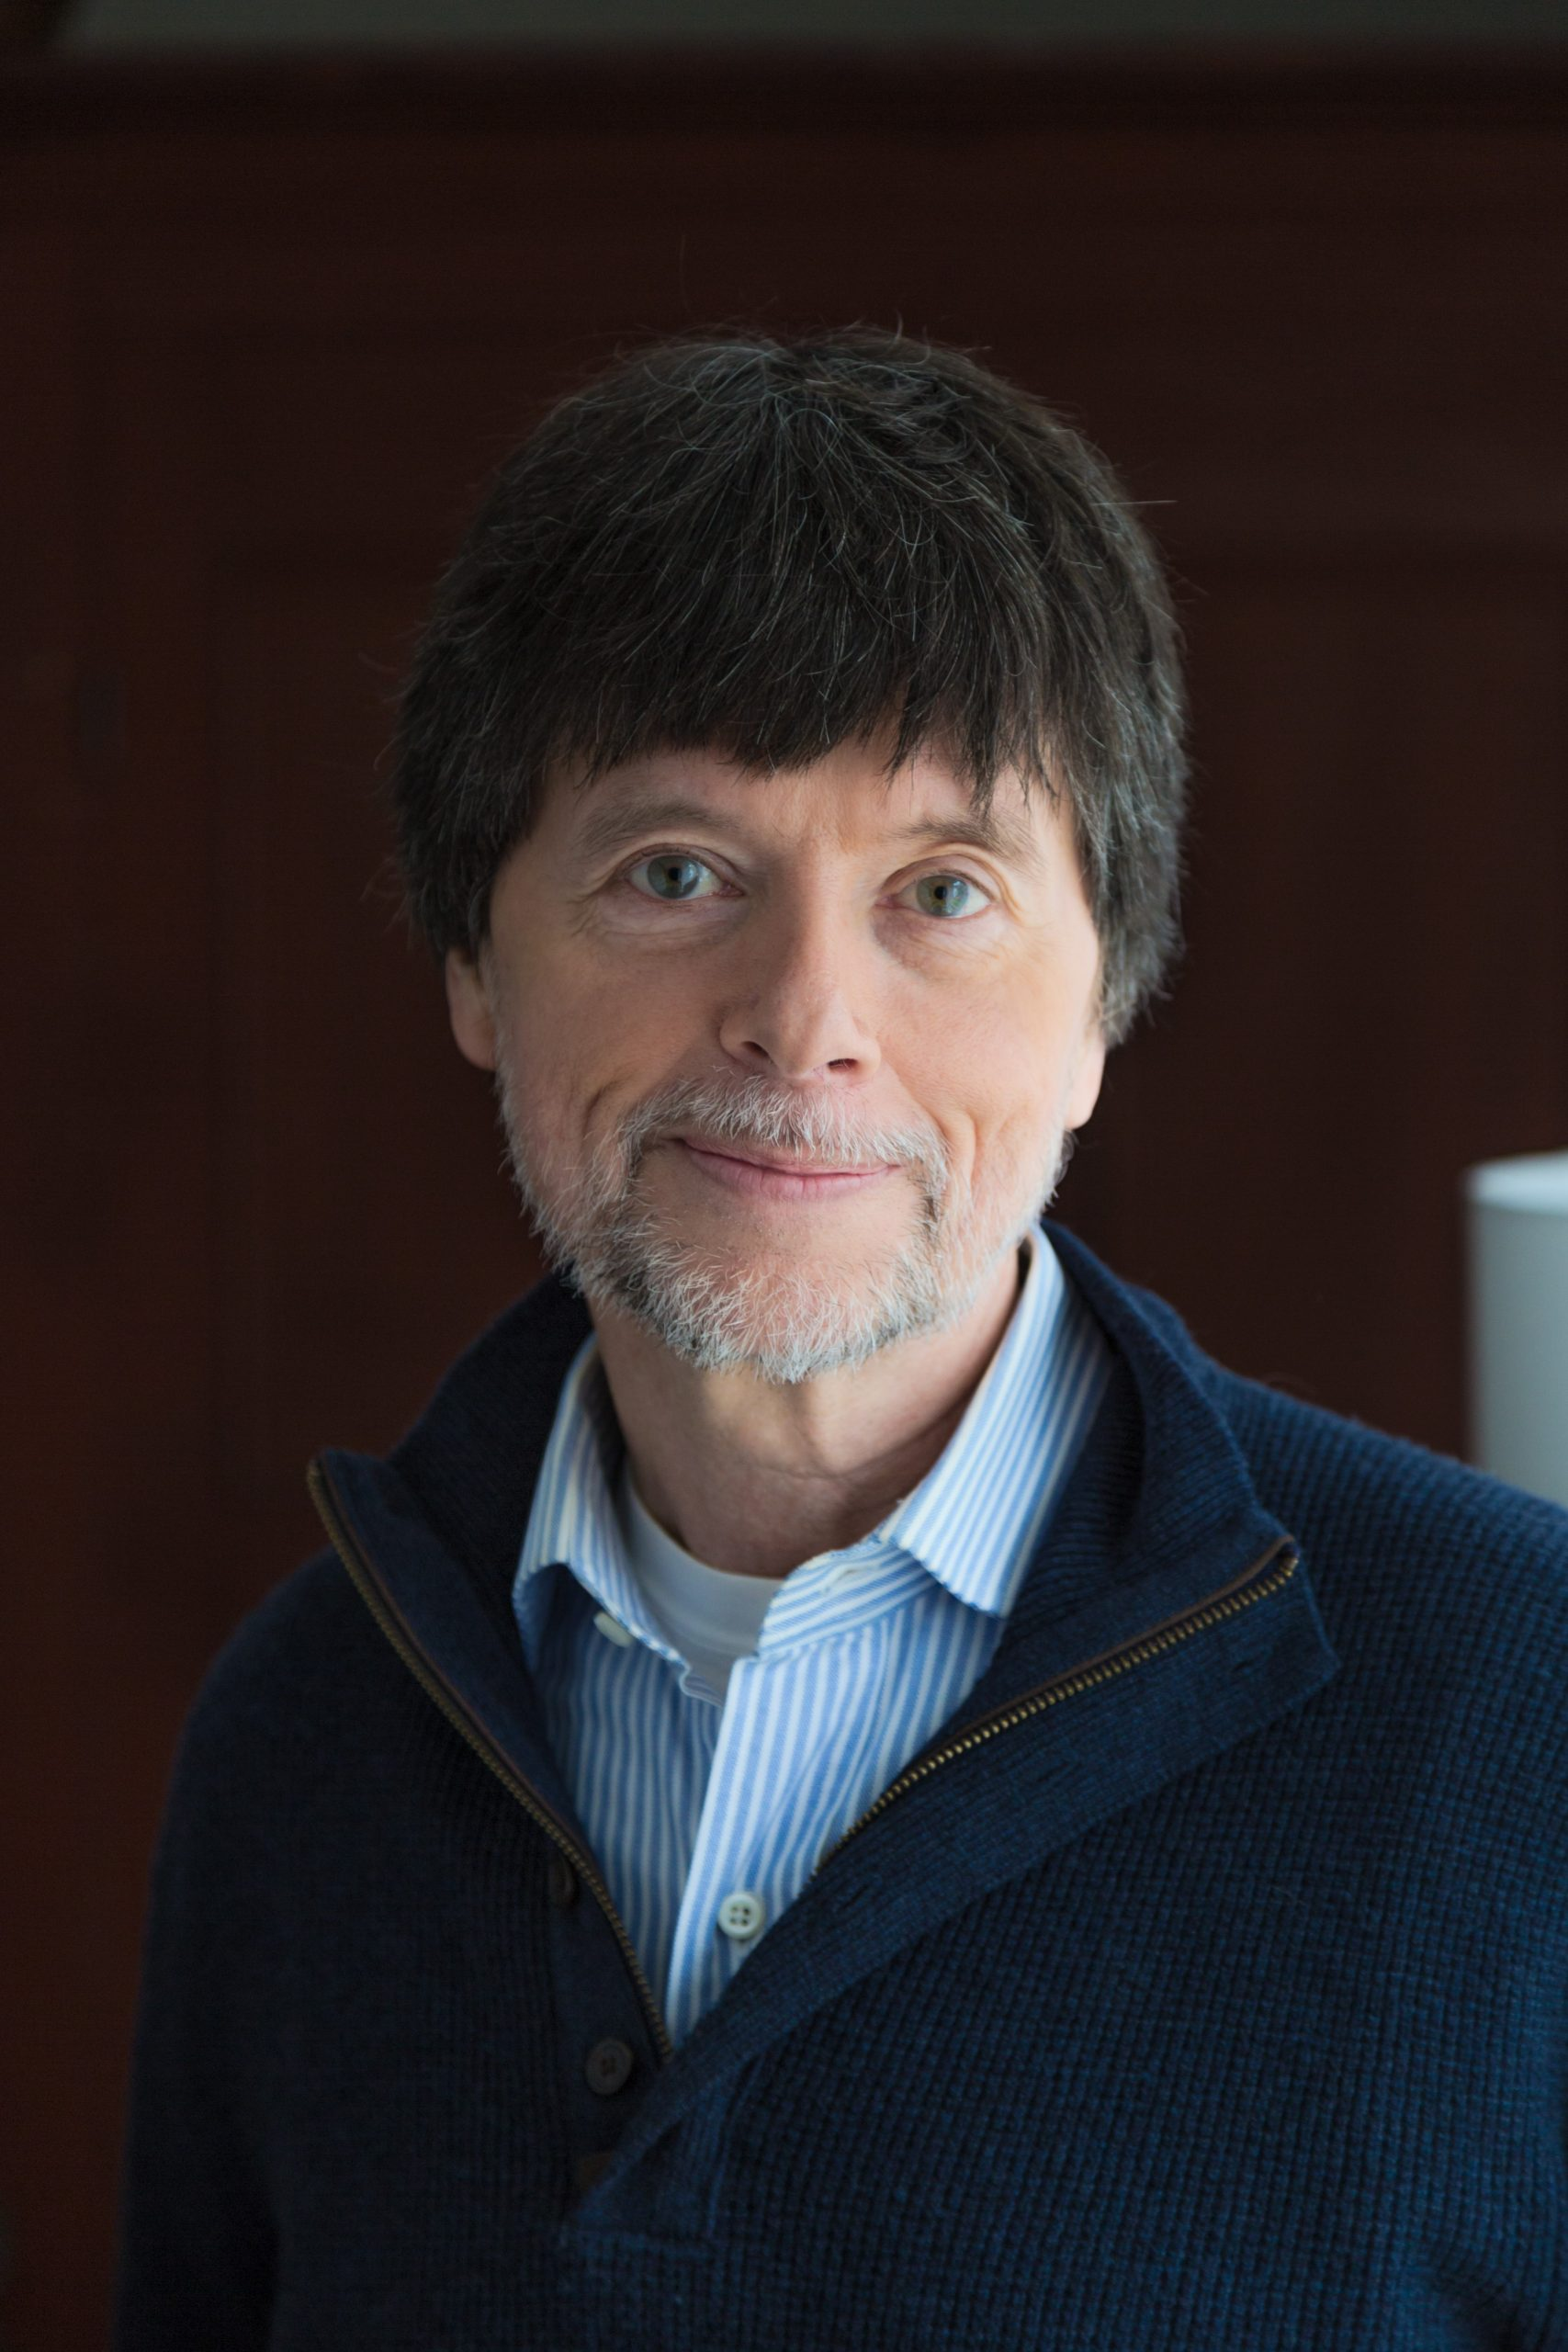 Ken Burns commenting on 1960s Michigan State football as an important story to tell and to understand